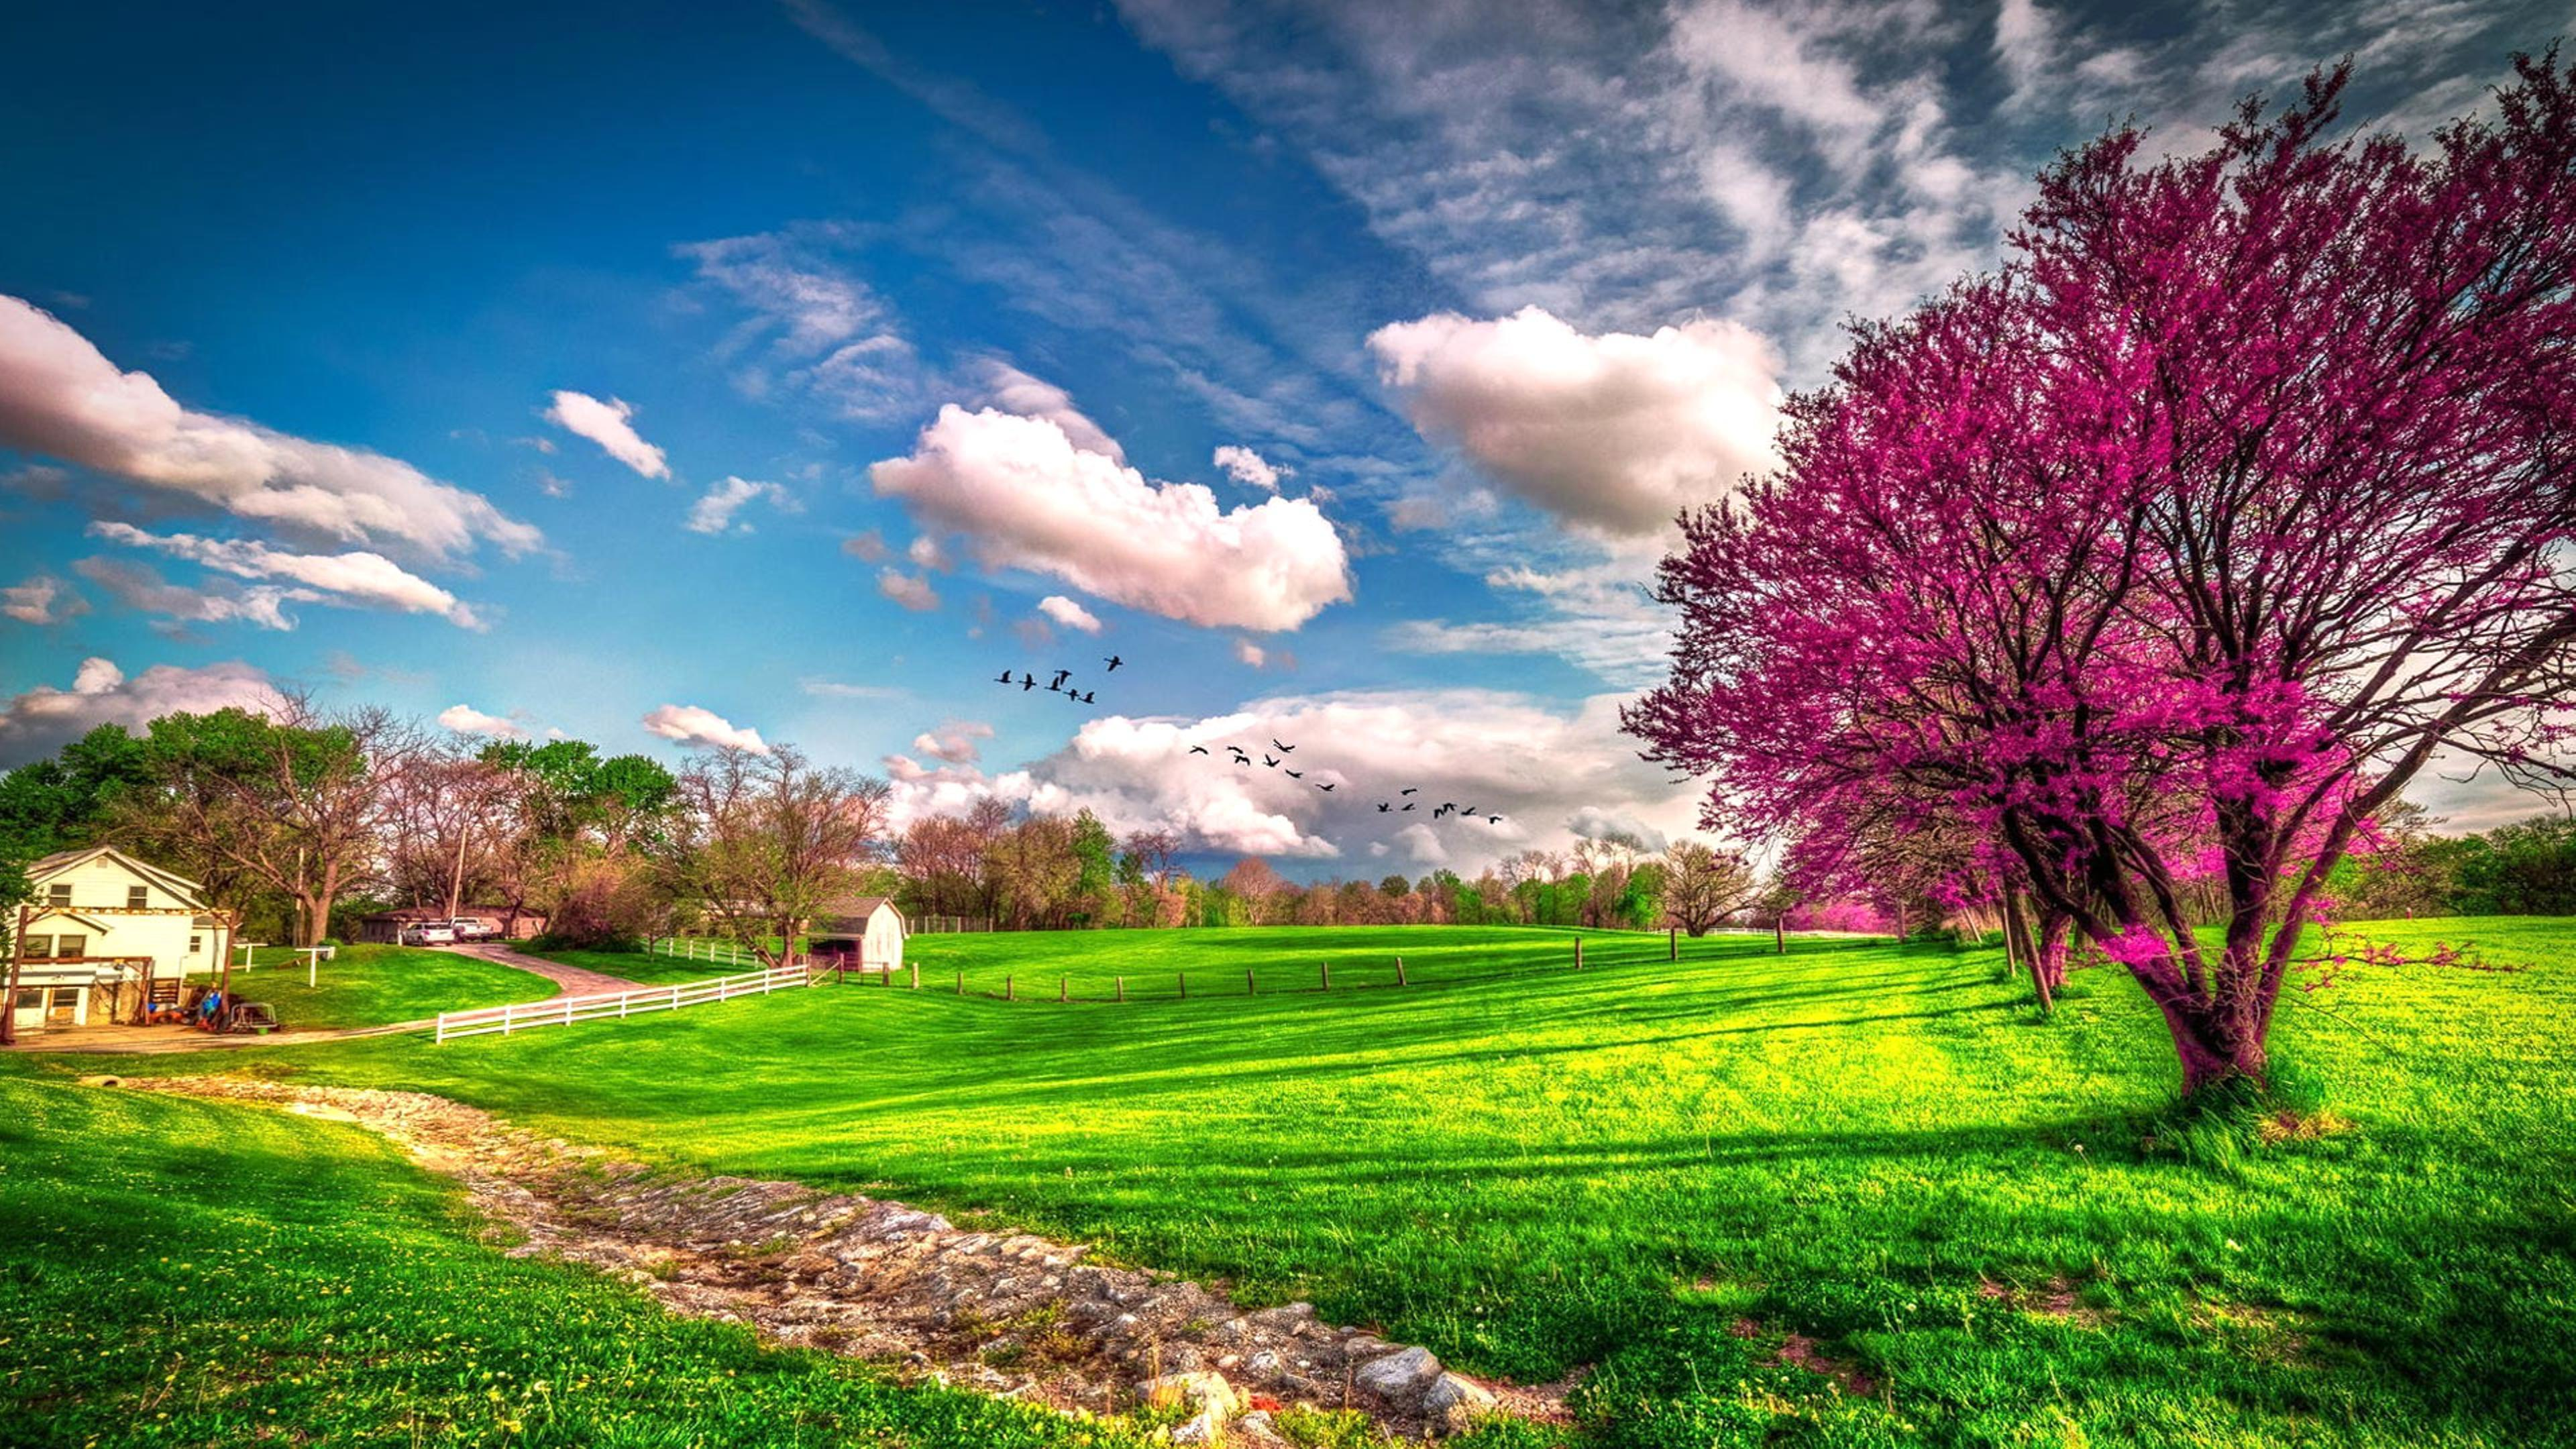 Beautiful Landscape Wallpapers Hd Images: Landscape Beautiful Spring Nature